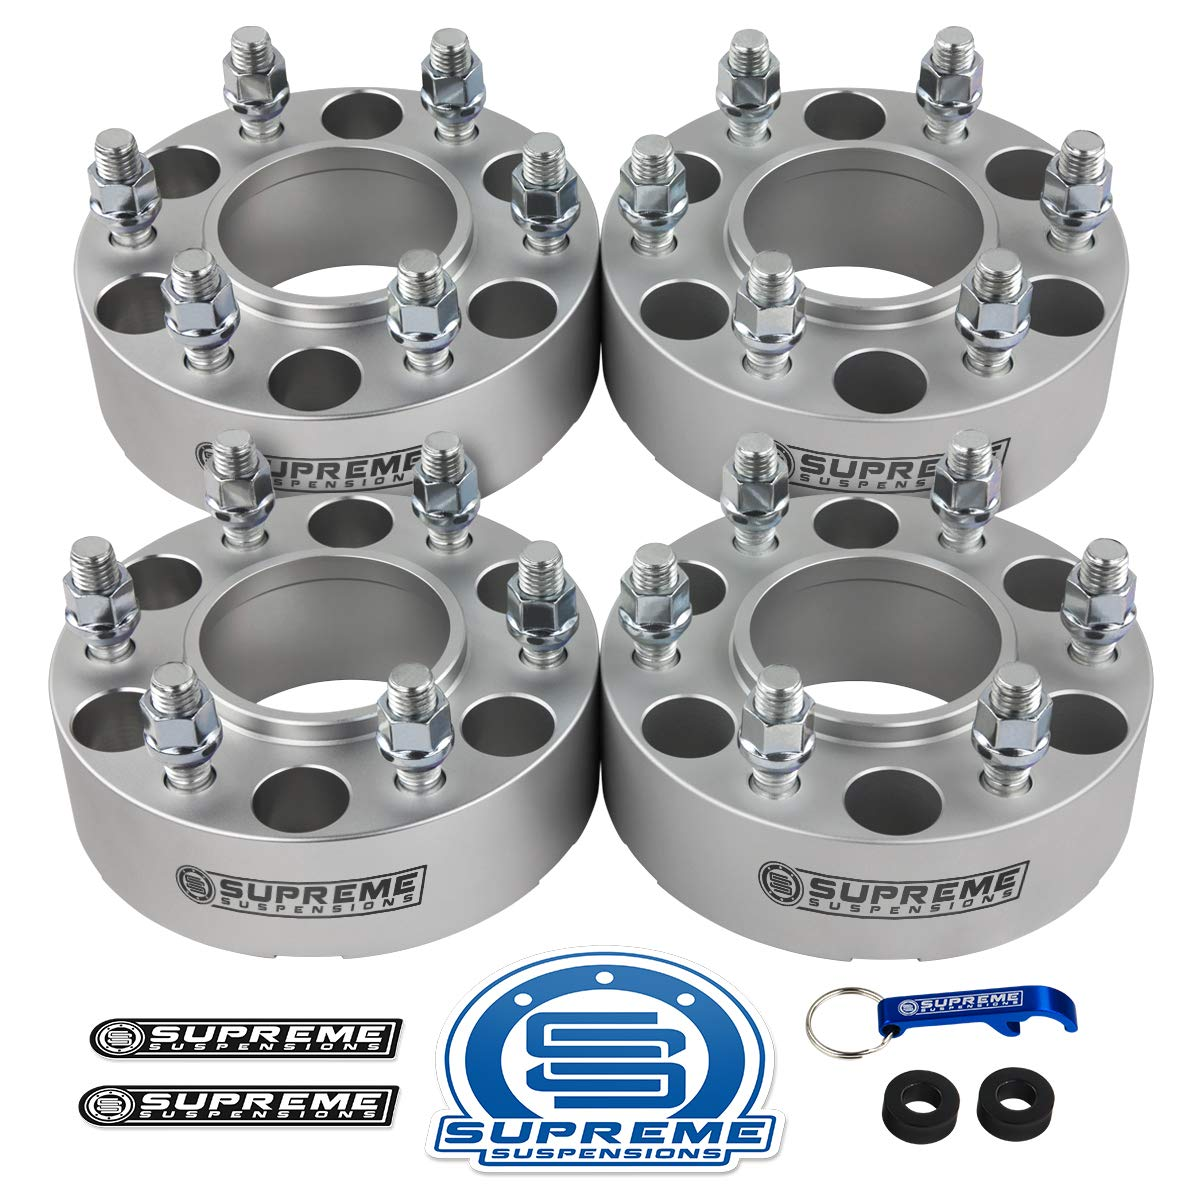 Supreme Suspensions - 4pc 2'' Hub Centric Wheel Spacers for 2004-2014 Ford F150 2WD 4WD 6x135mm BP with M14x2 Studs 87mm Center Bore w/Lip [Silver] by Supreme Suspensions